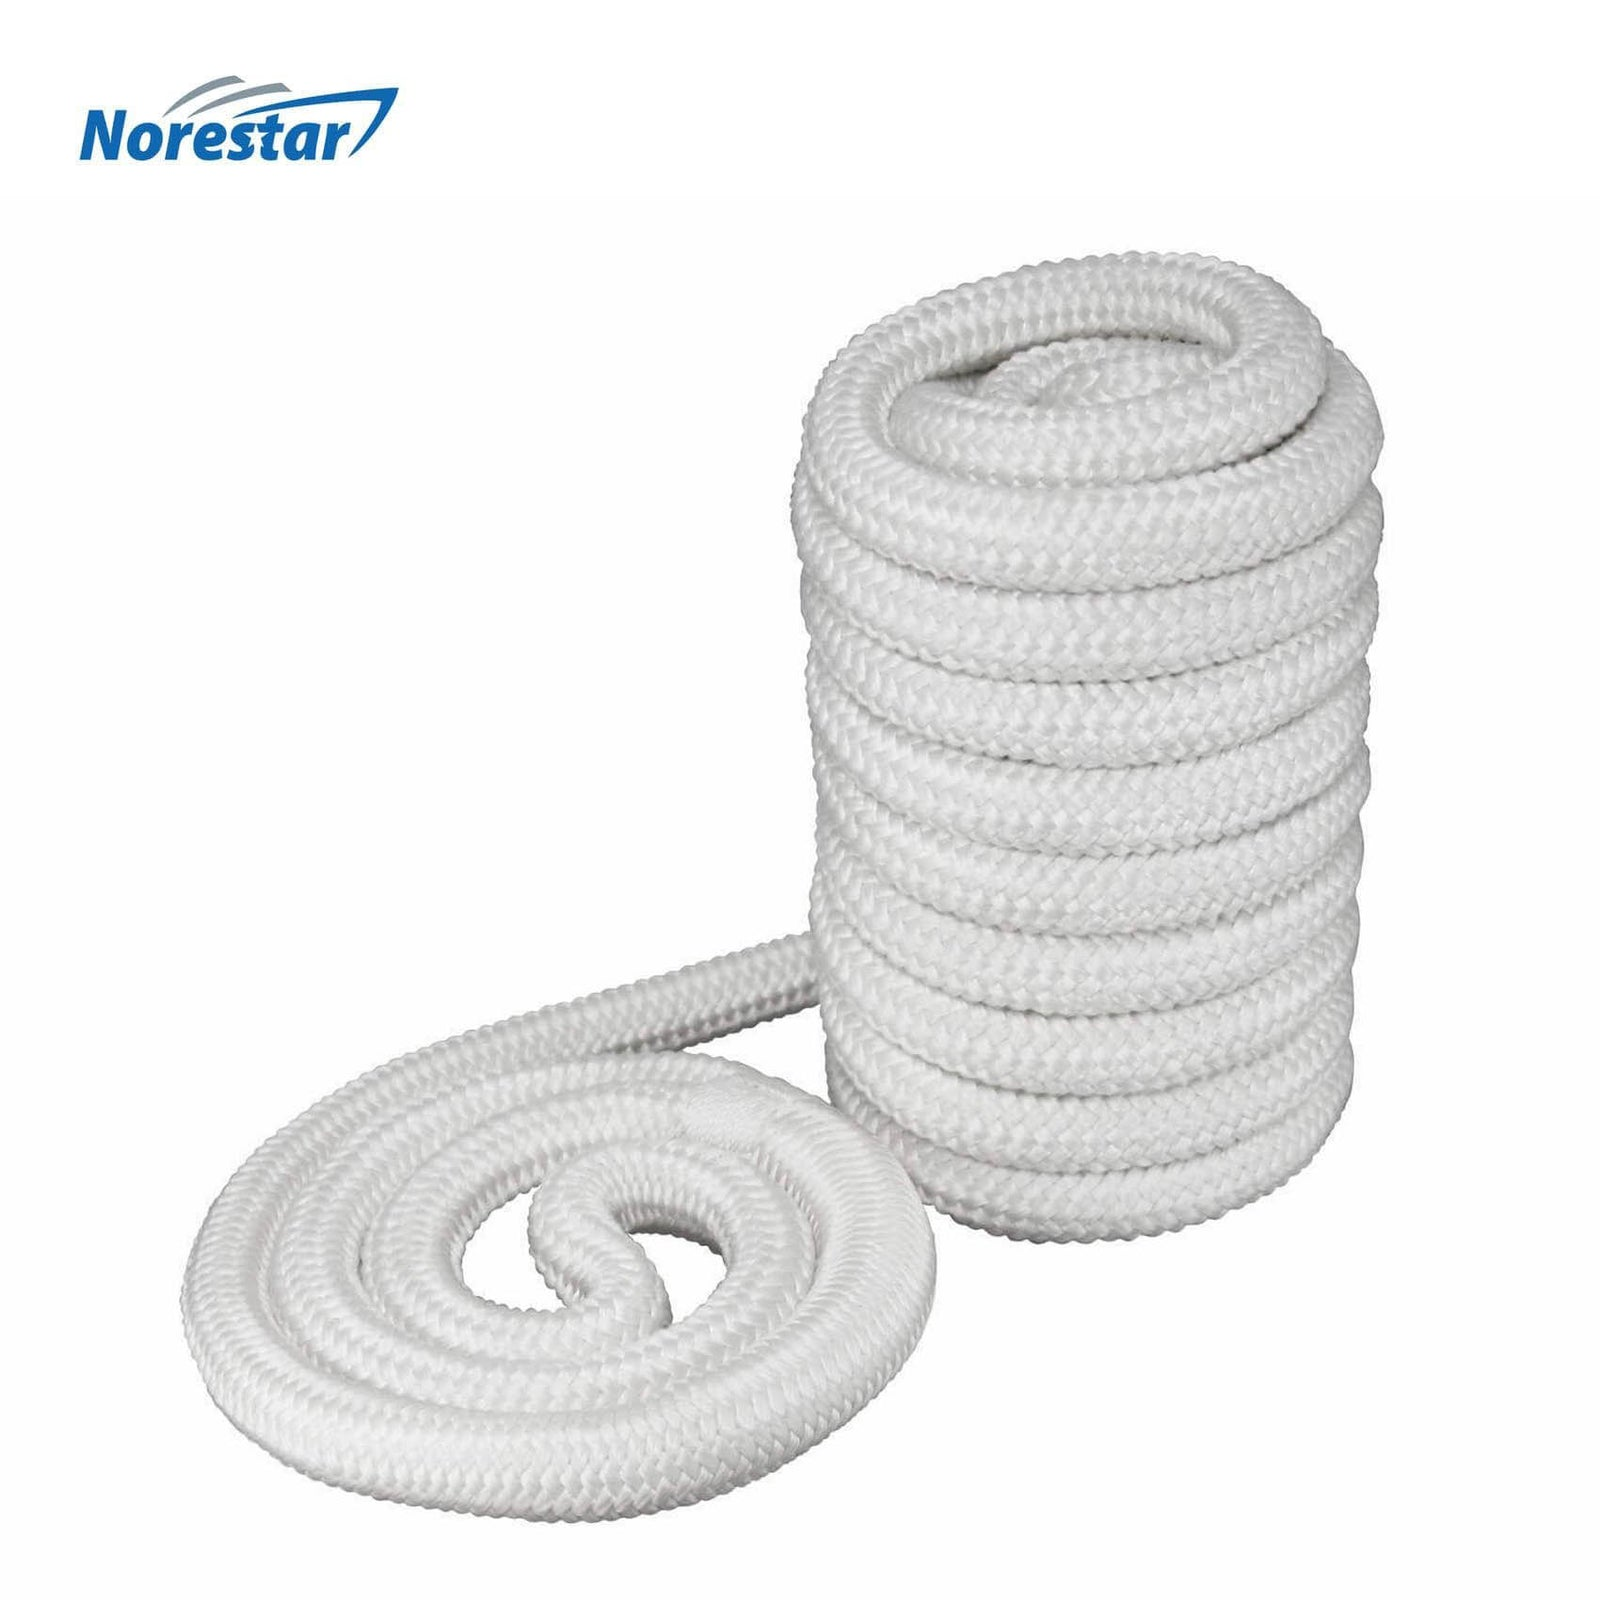 Norestar Braided Nylon Dock Line  White